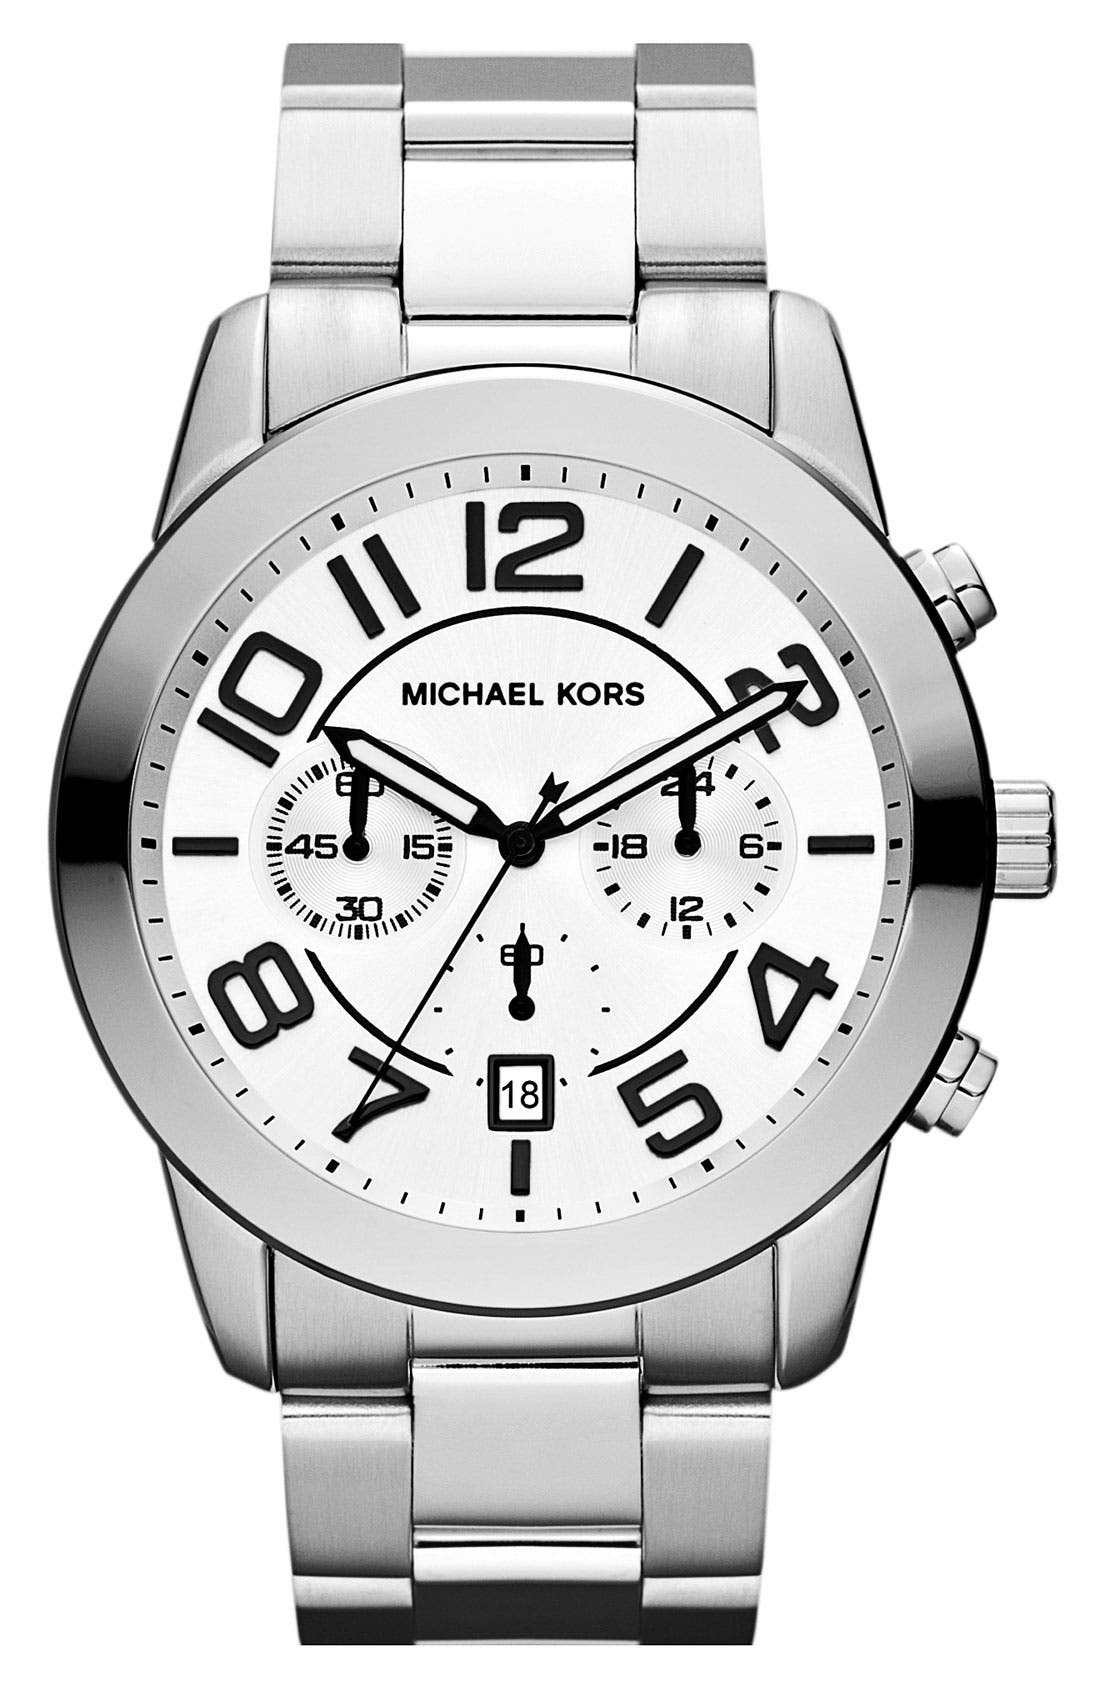 Main Image - Michael Kors 'Mercer' Large Chronograph Bracelet Watch, 45mm